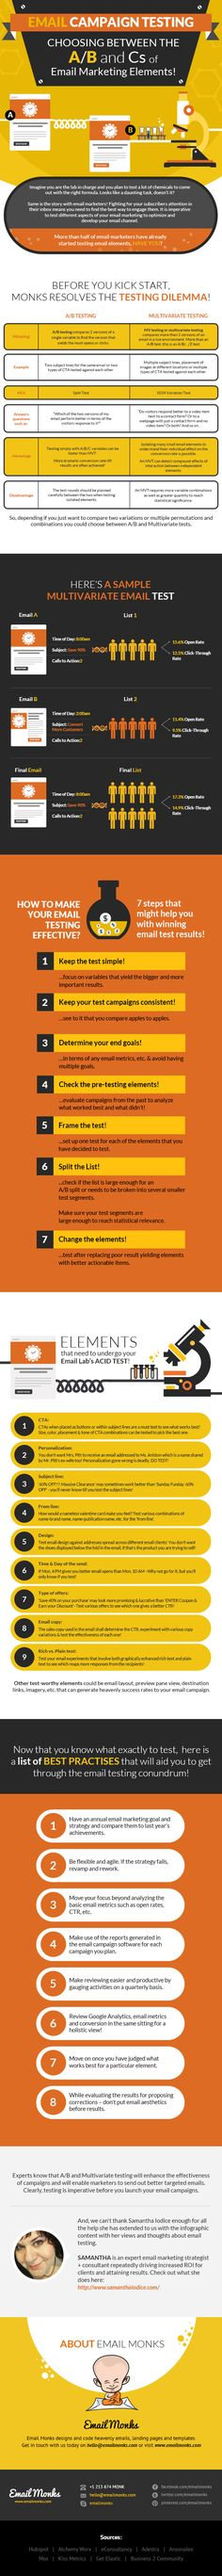 #Infographic on how you can test your #EmailCampaign using A/B testing.